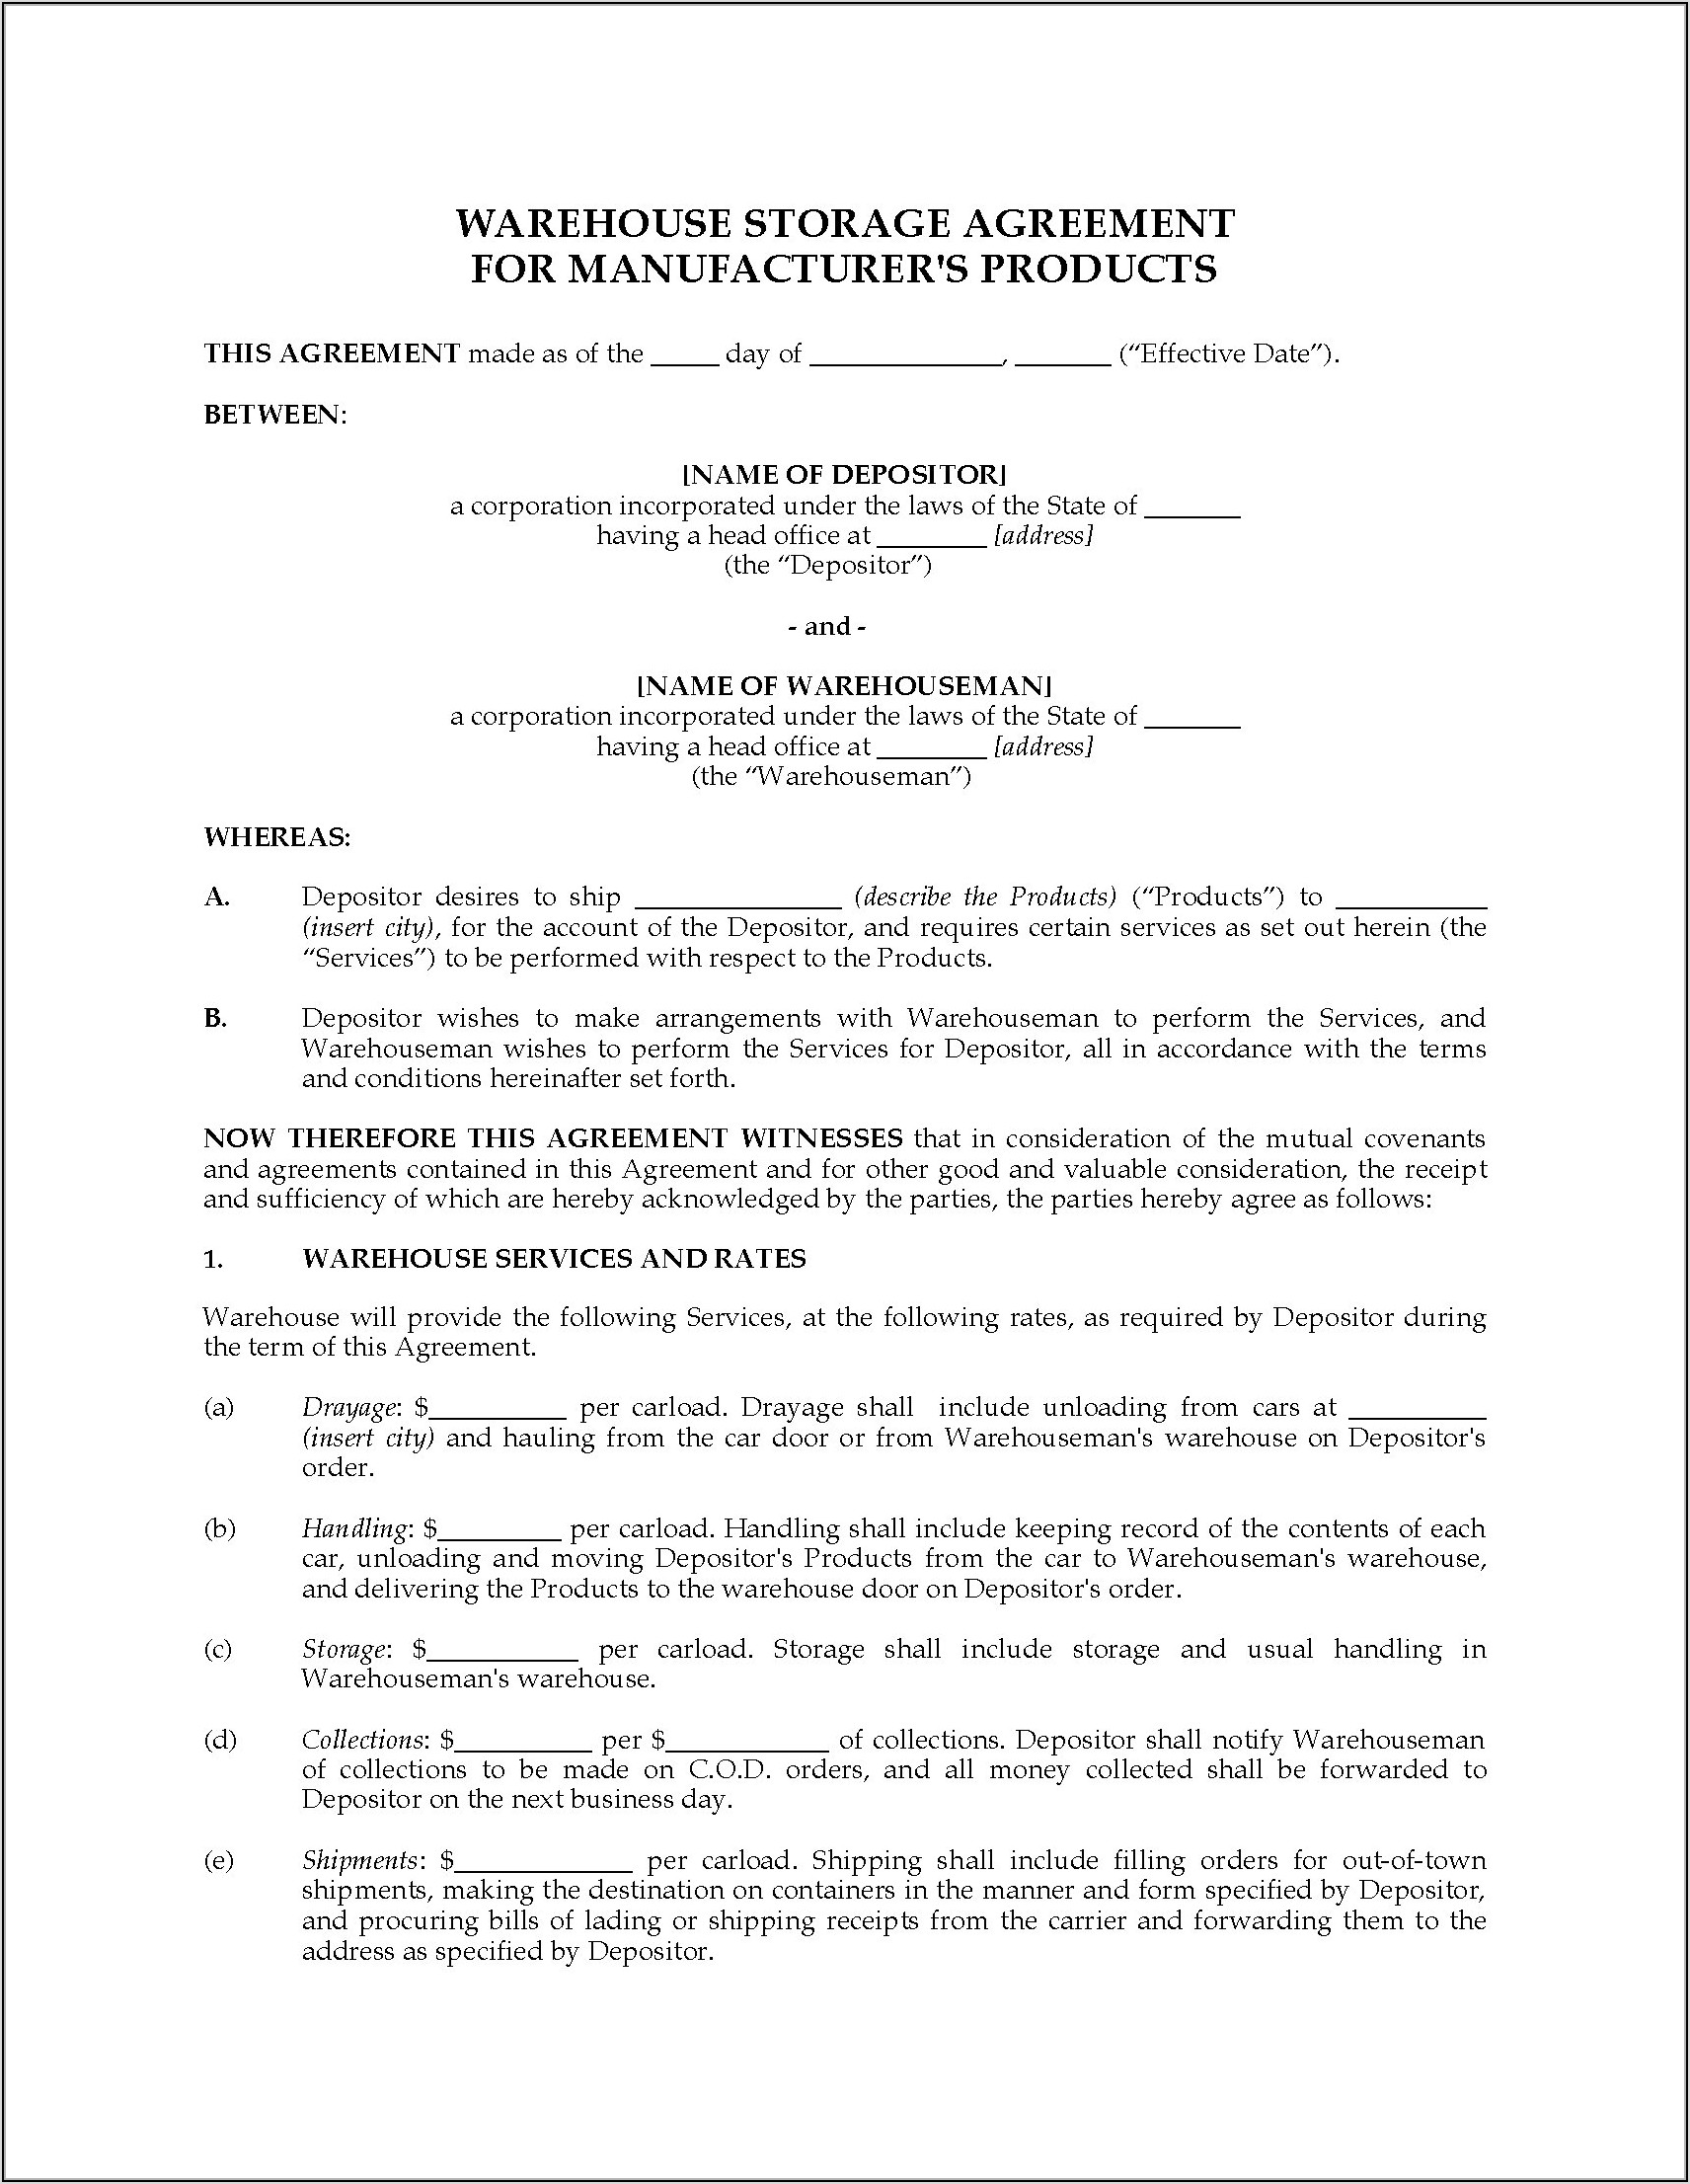 Warehouse Services Agreement Template